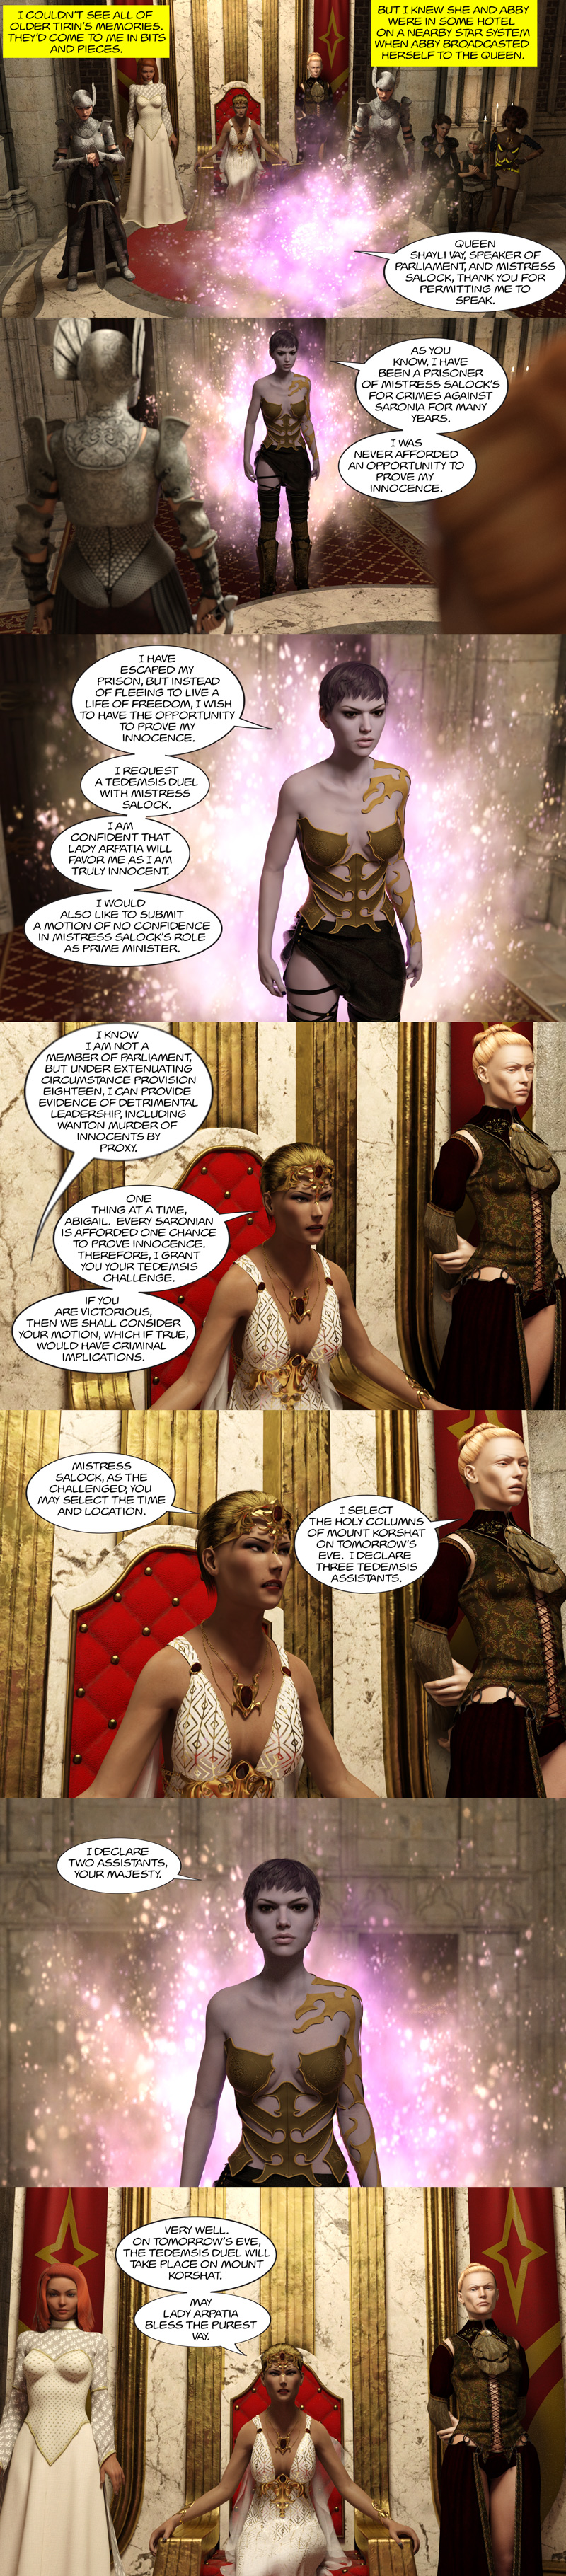 Chapter 16, page 15 – Abby requests Tedemsis Duel to prove her innocence